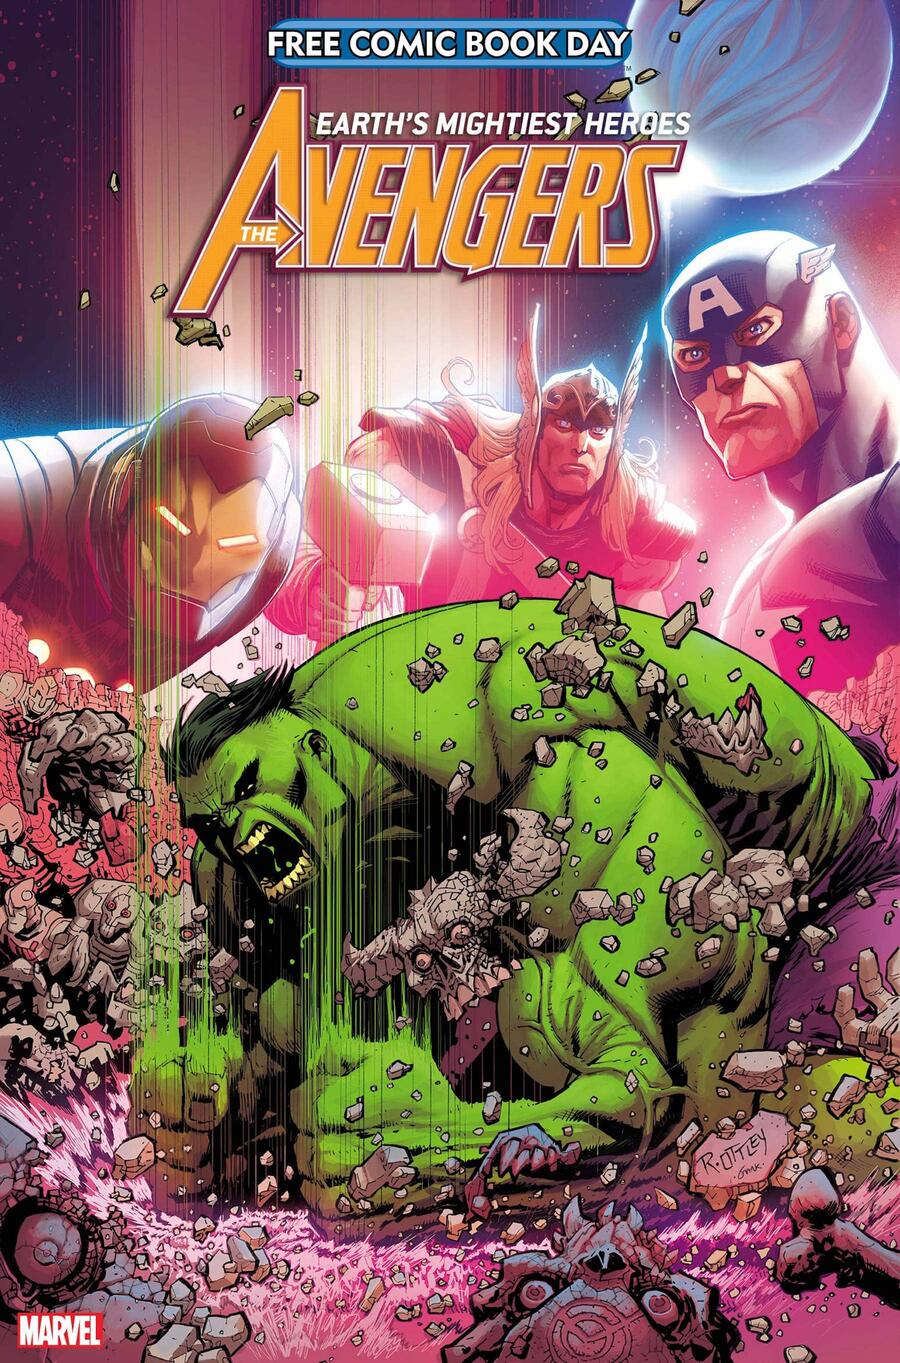 FREE COMIC BOOK DAY 2021: AVENGERS/HULK cover by Ryan Ottley